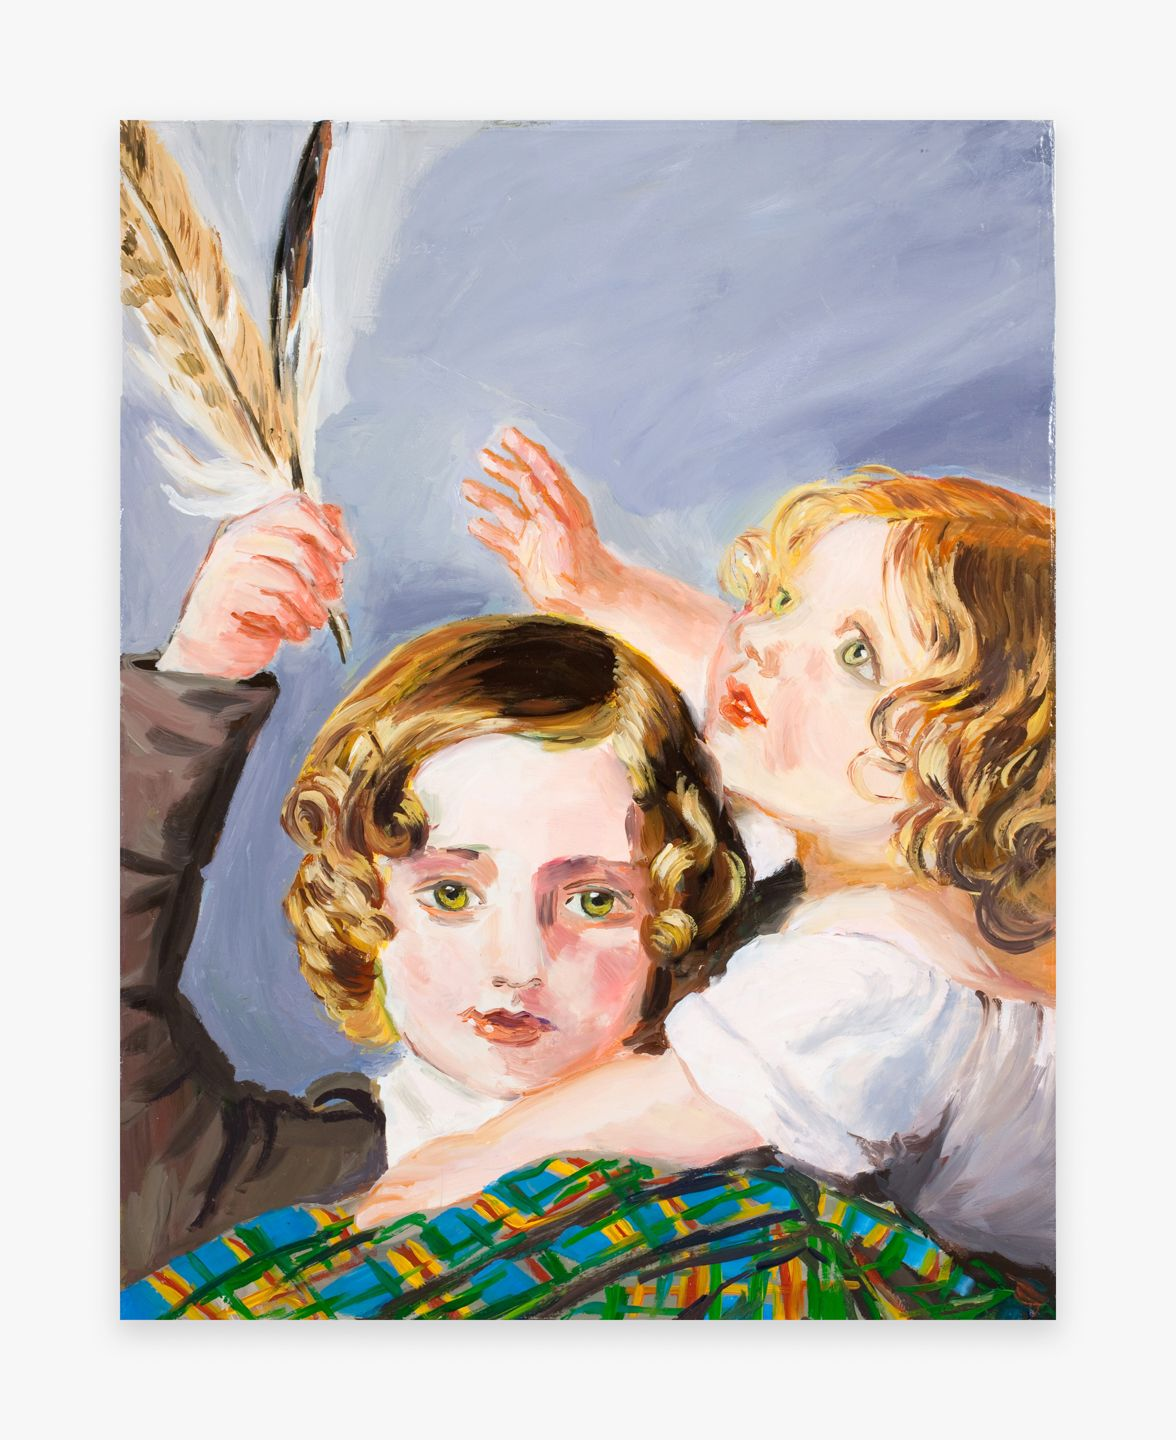 Karen Kilimnik, My Nephews in Germany by Winterhalter, 2009